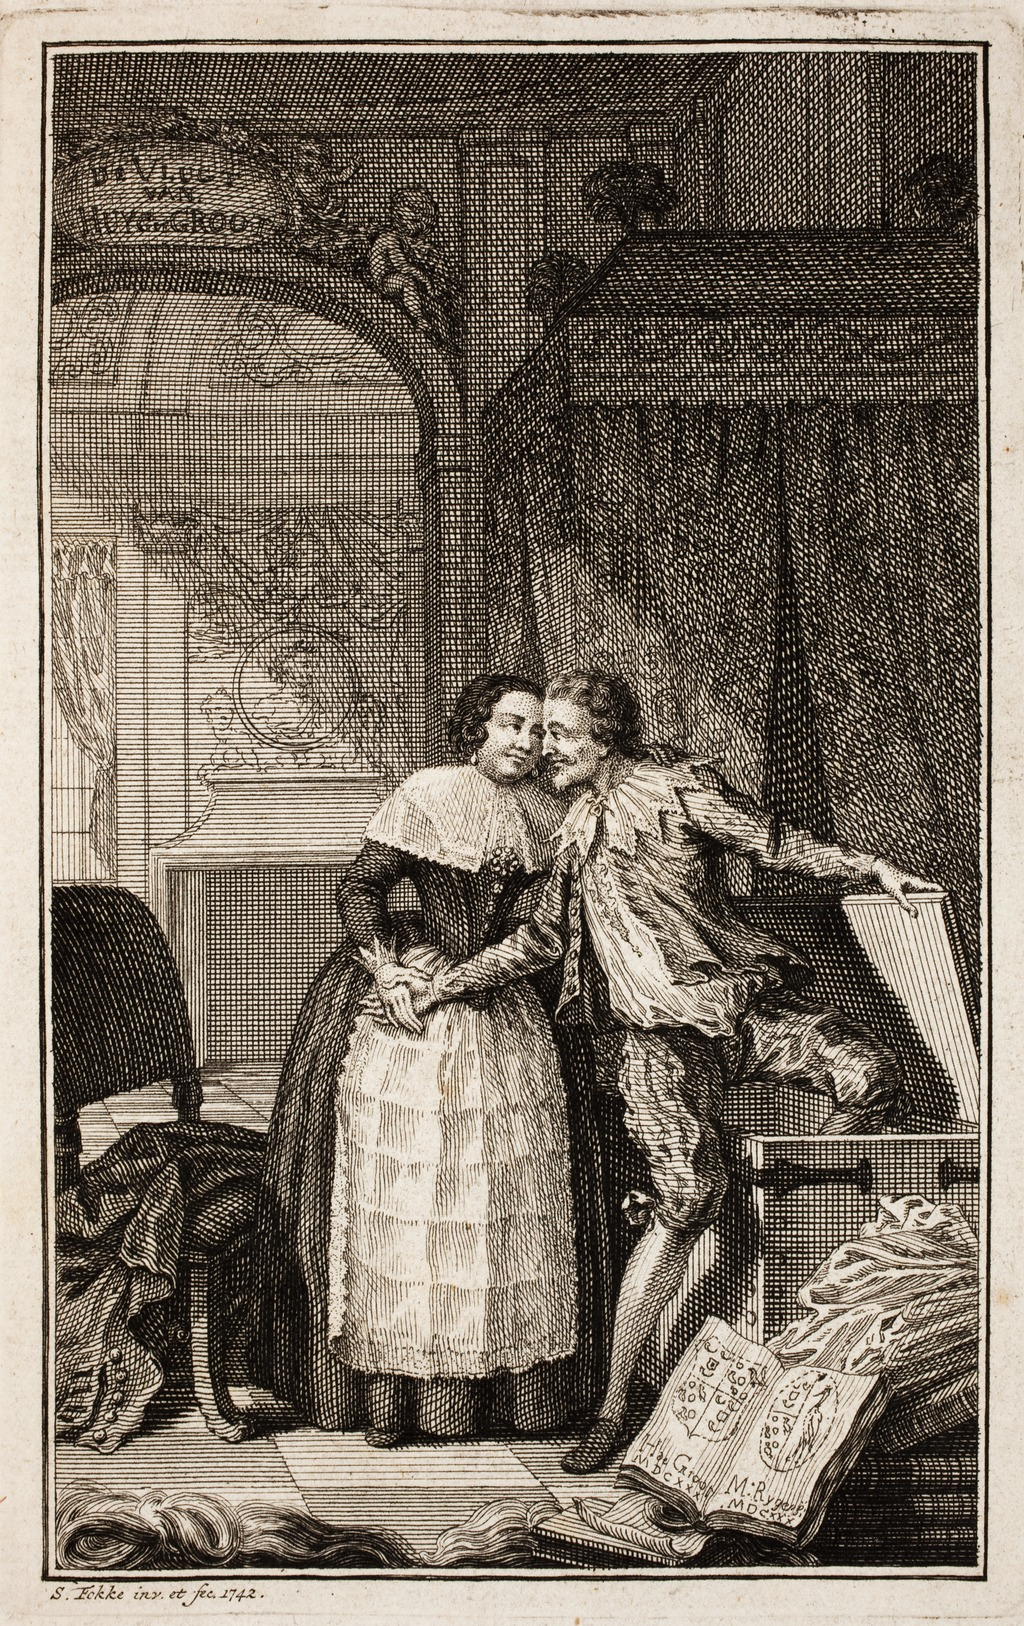 Painting showing woman and man looking each other in the eye while man has part of one leg in a trunk